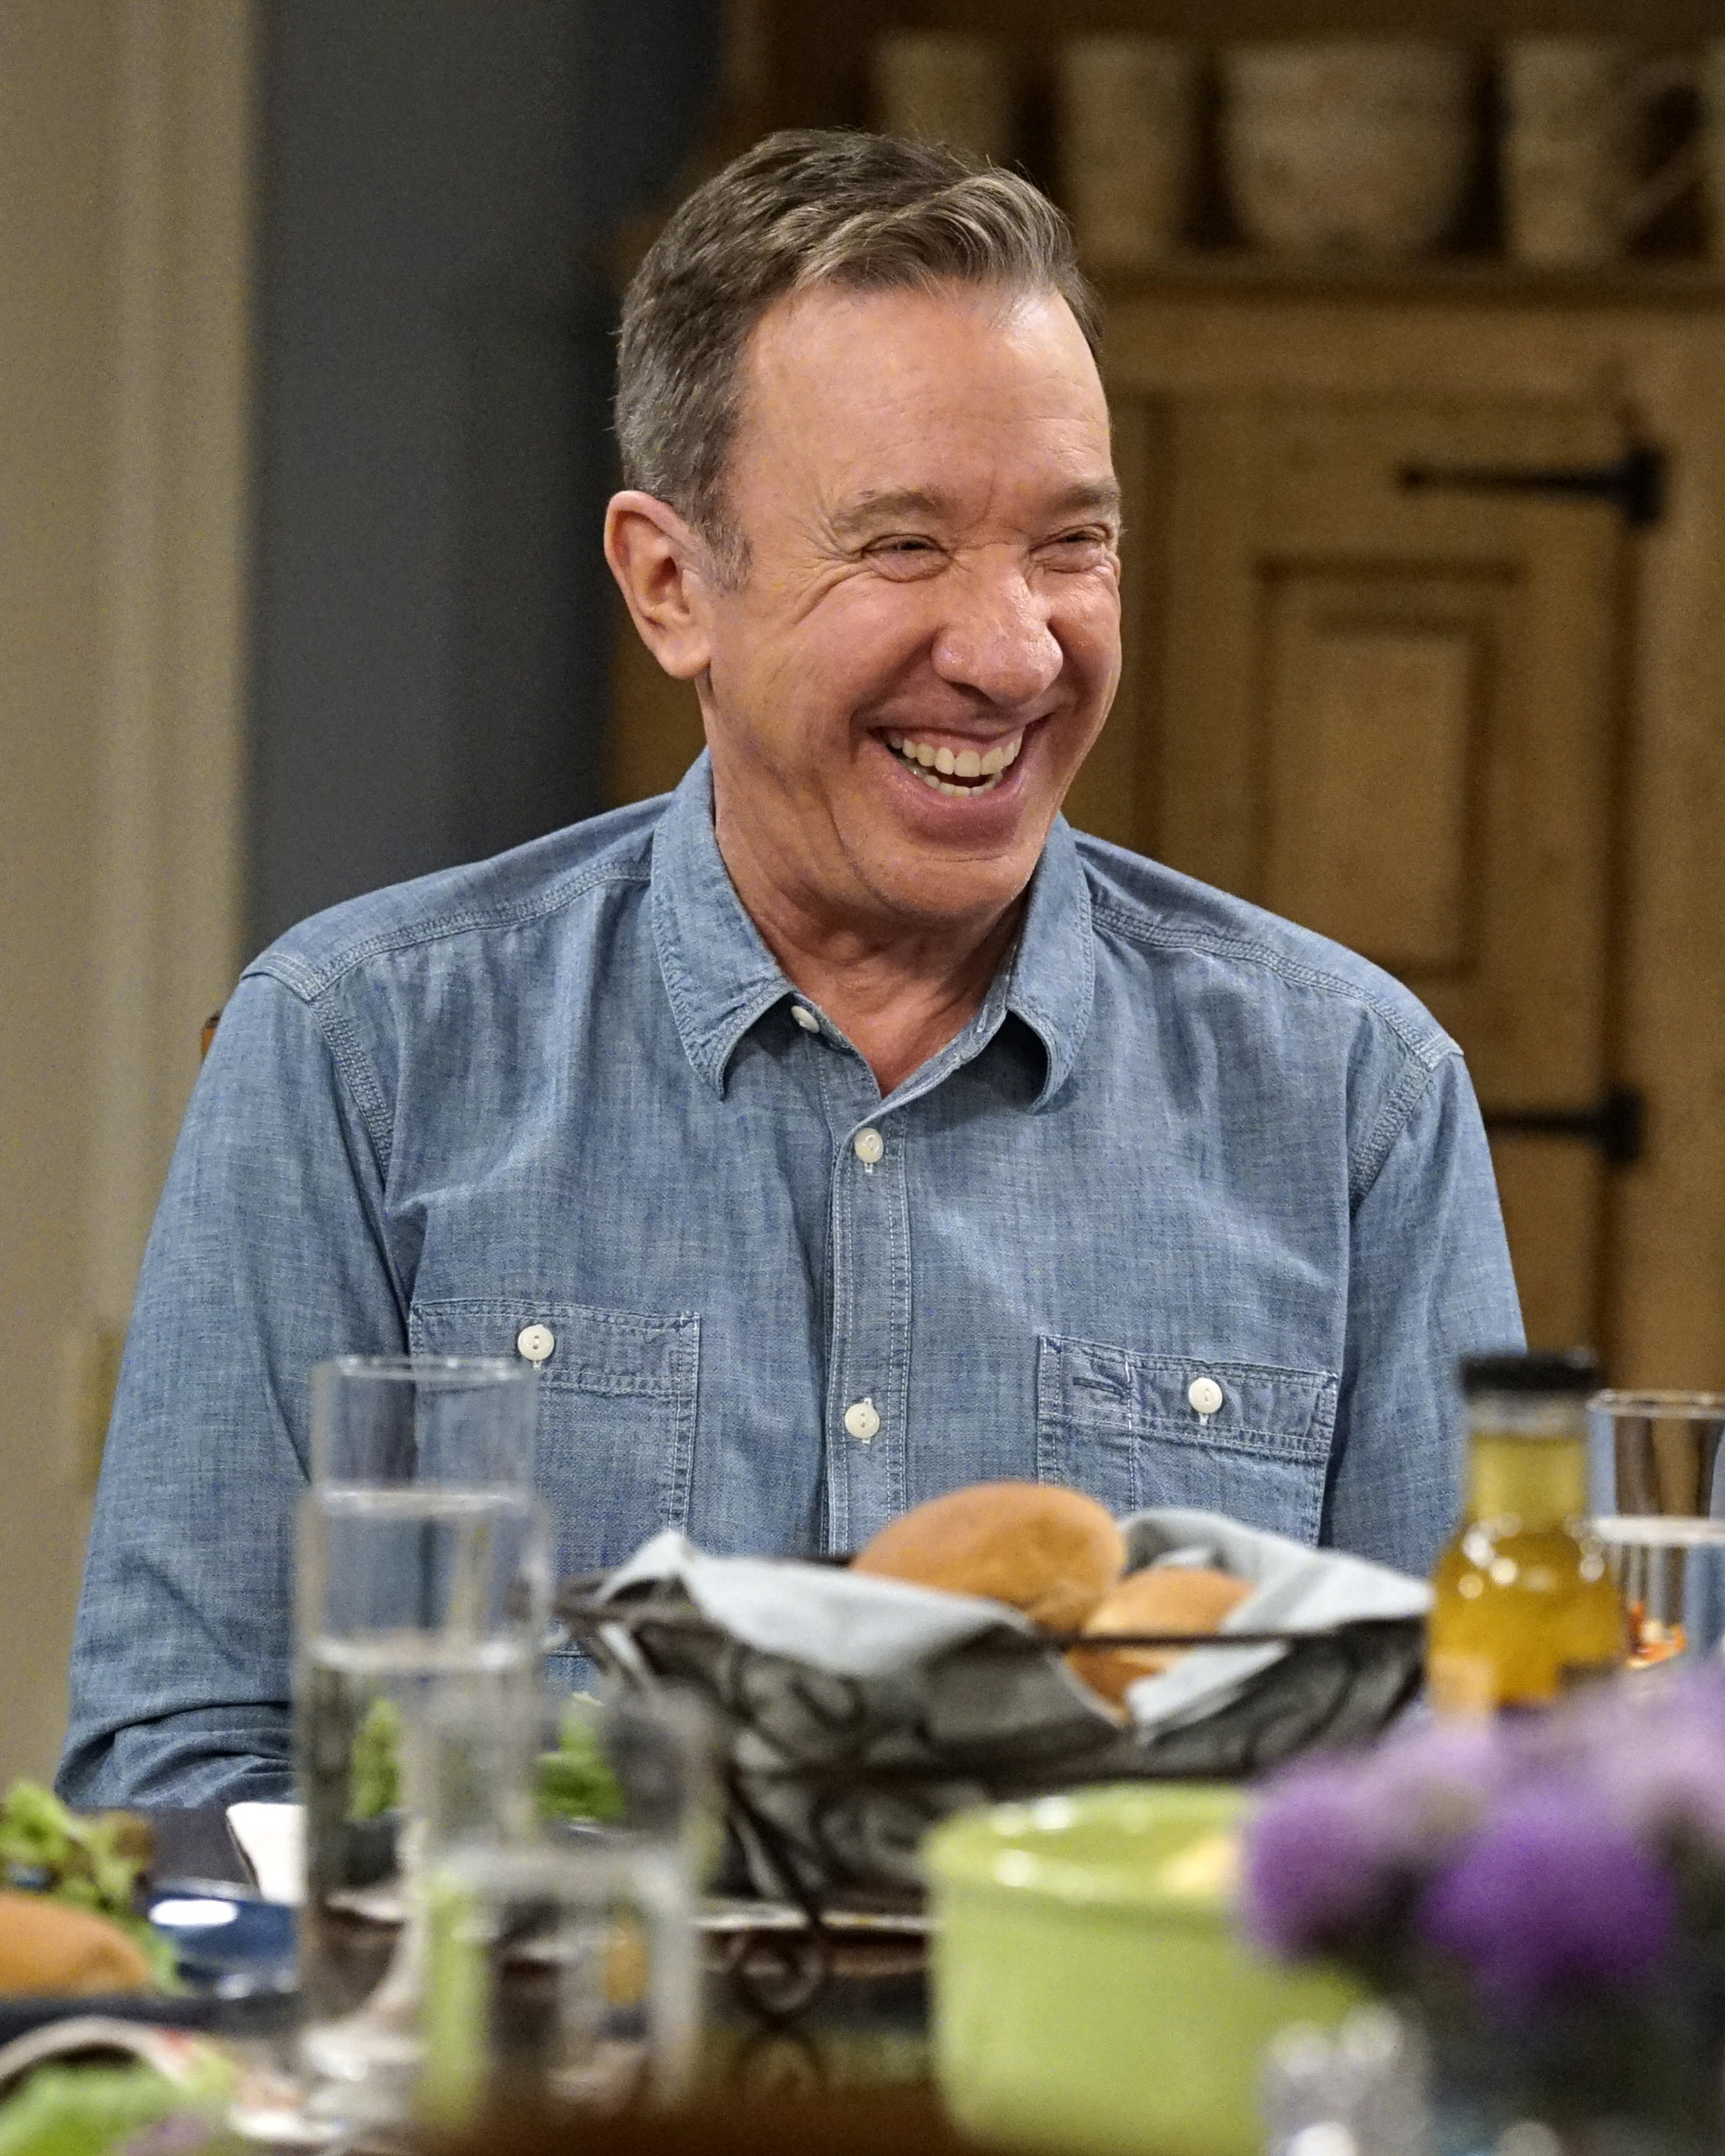 Tim Allen lashes out at ABC after 'Last Man Standing' cancellation: 'Stunned and blindsided'